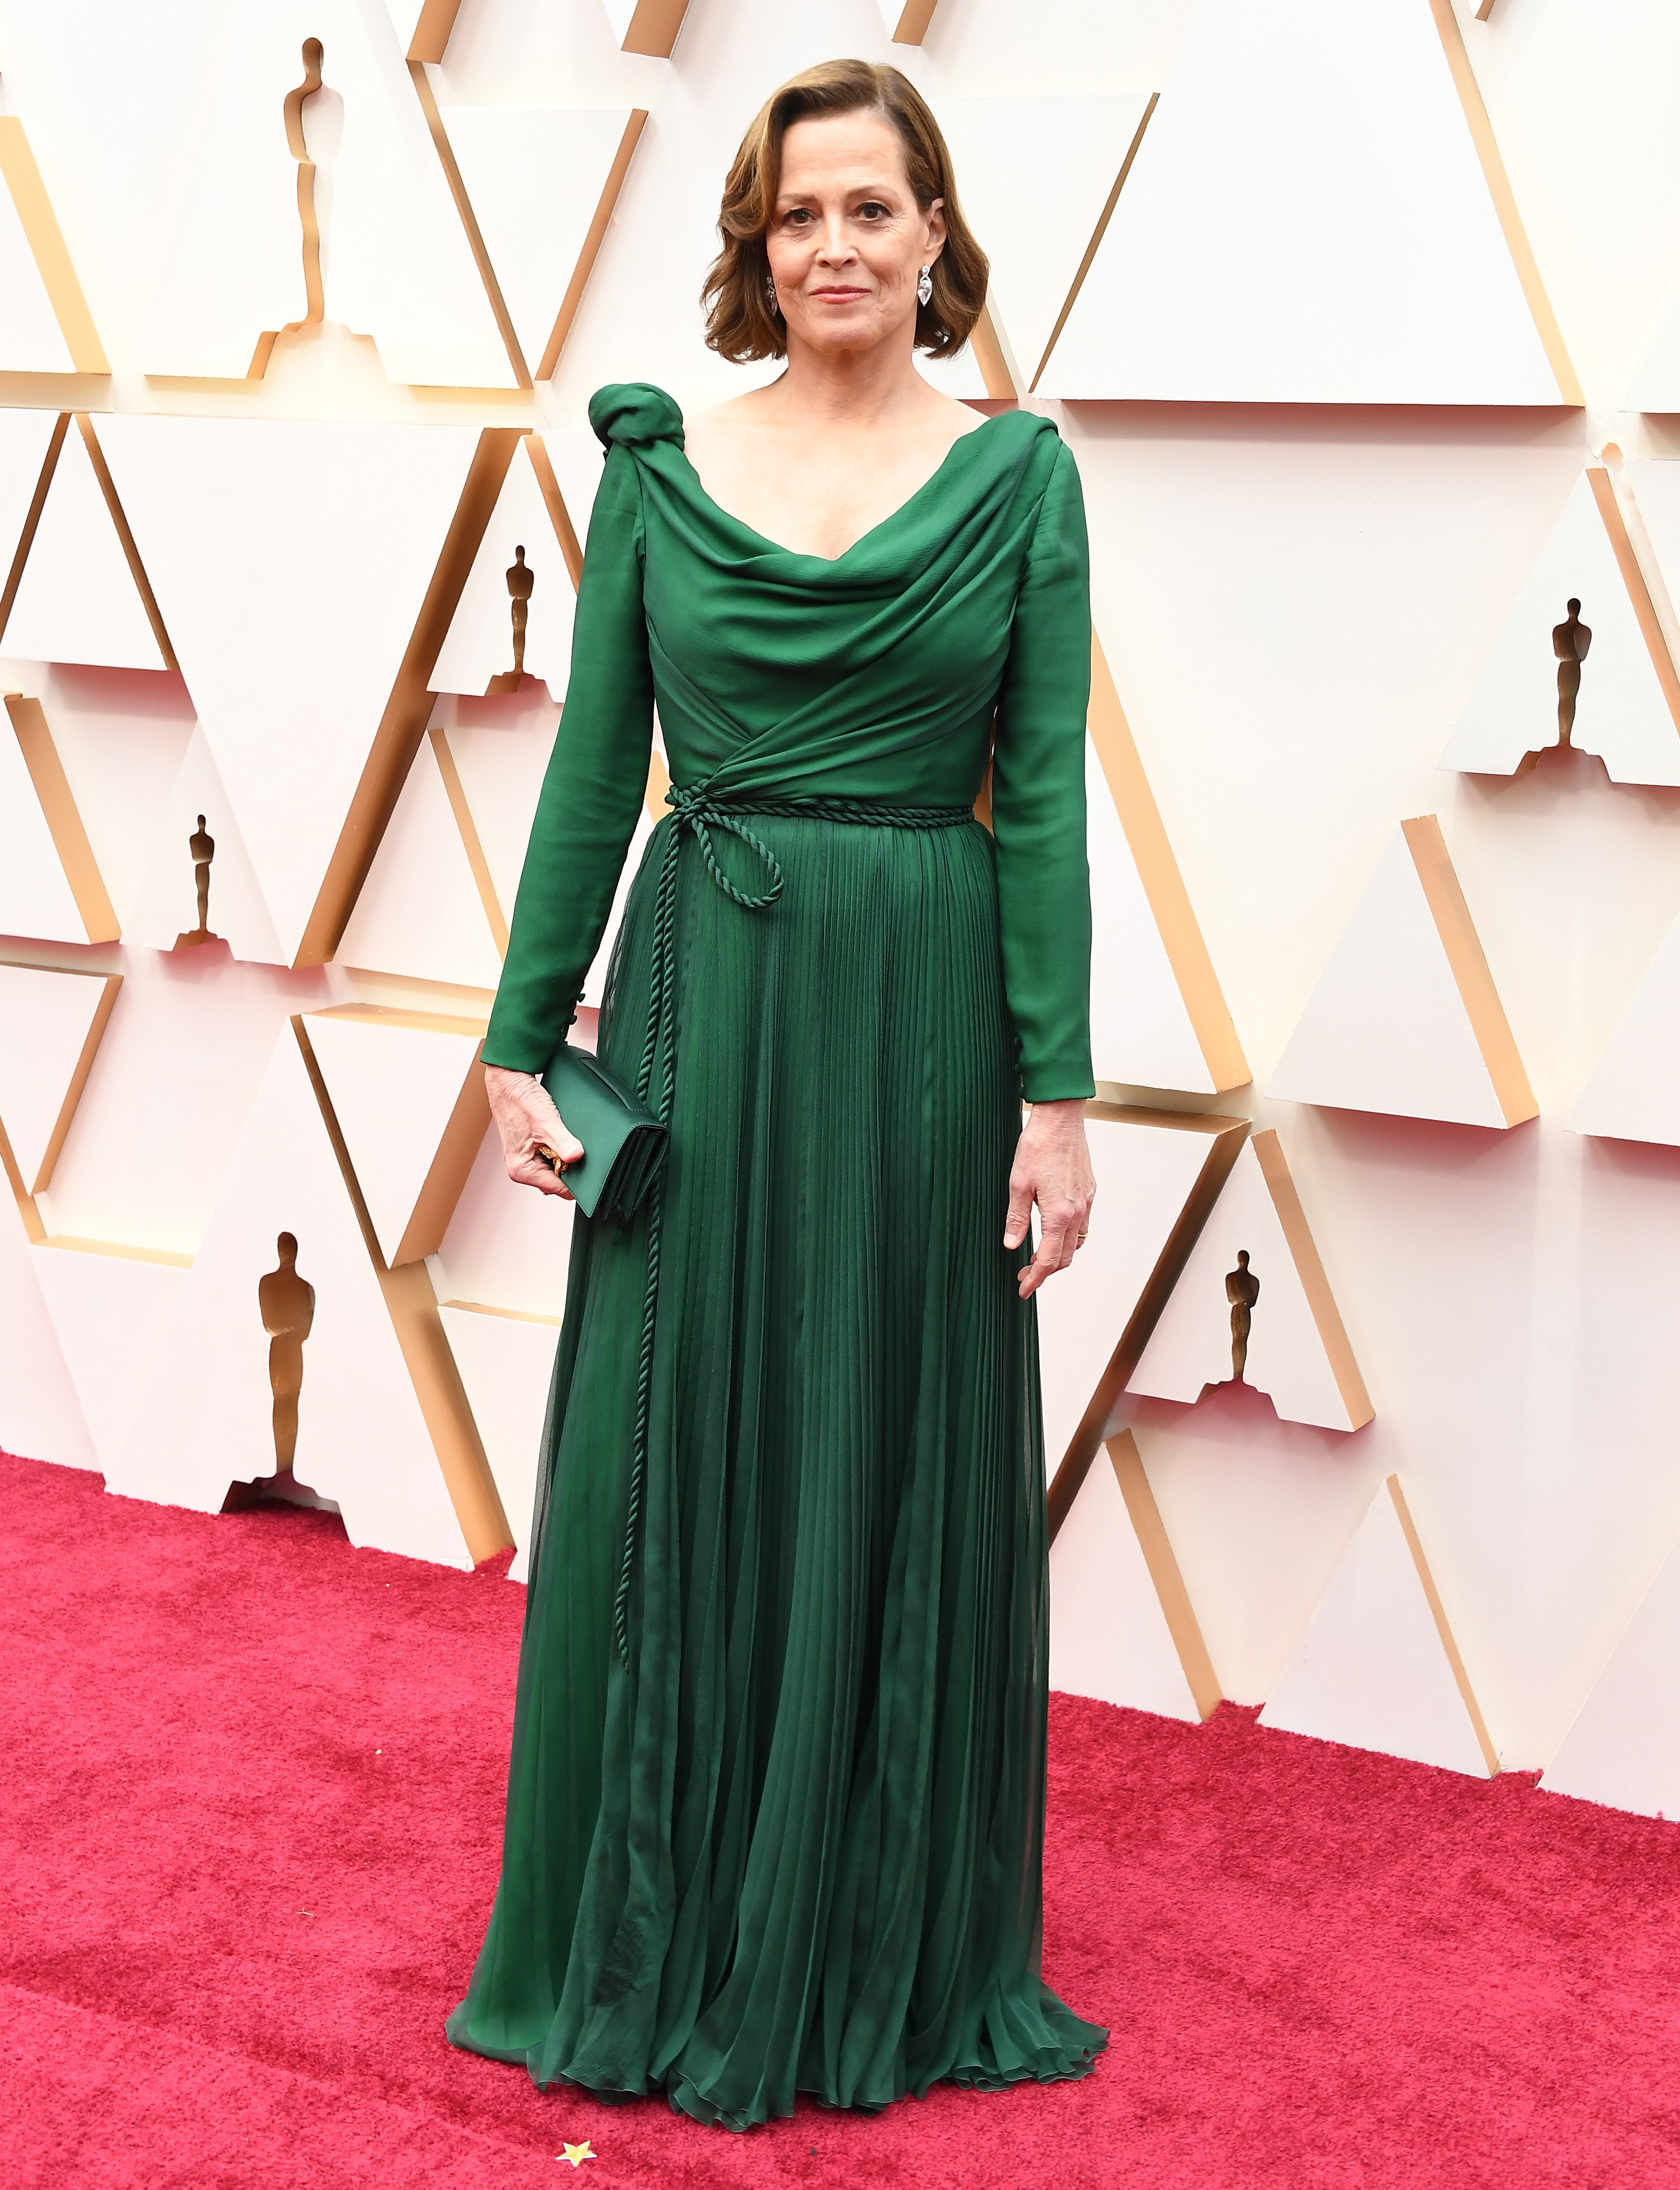 Sigourney Weaver aux Oscars le 09 février 2020 à Hollywood | Photo: Getty Images